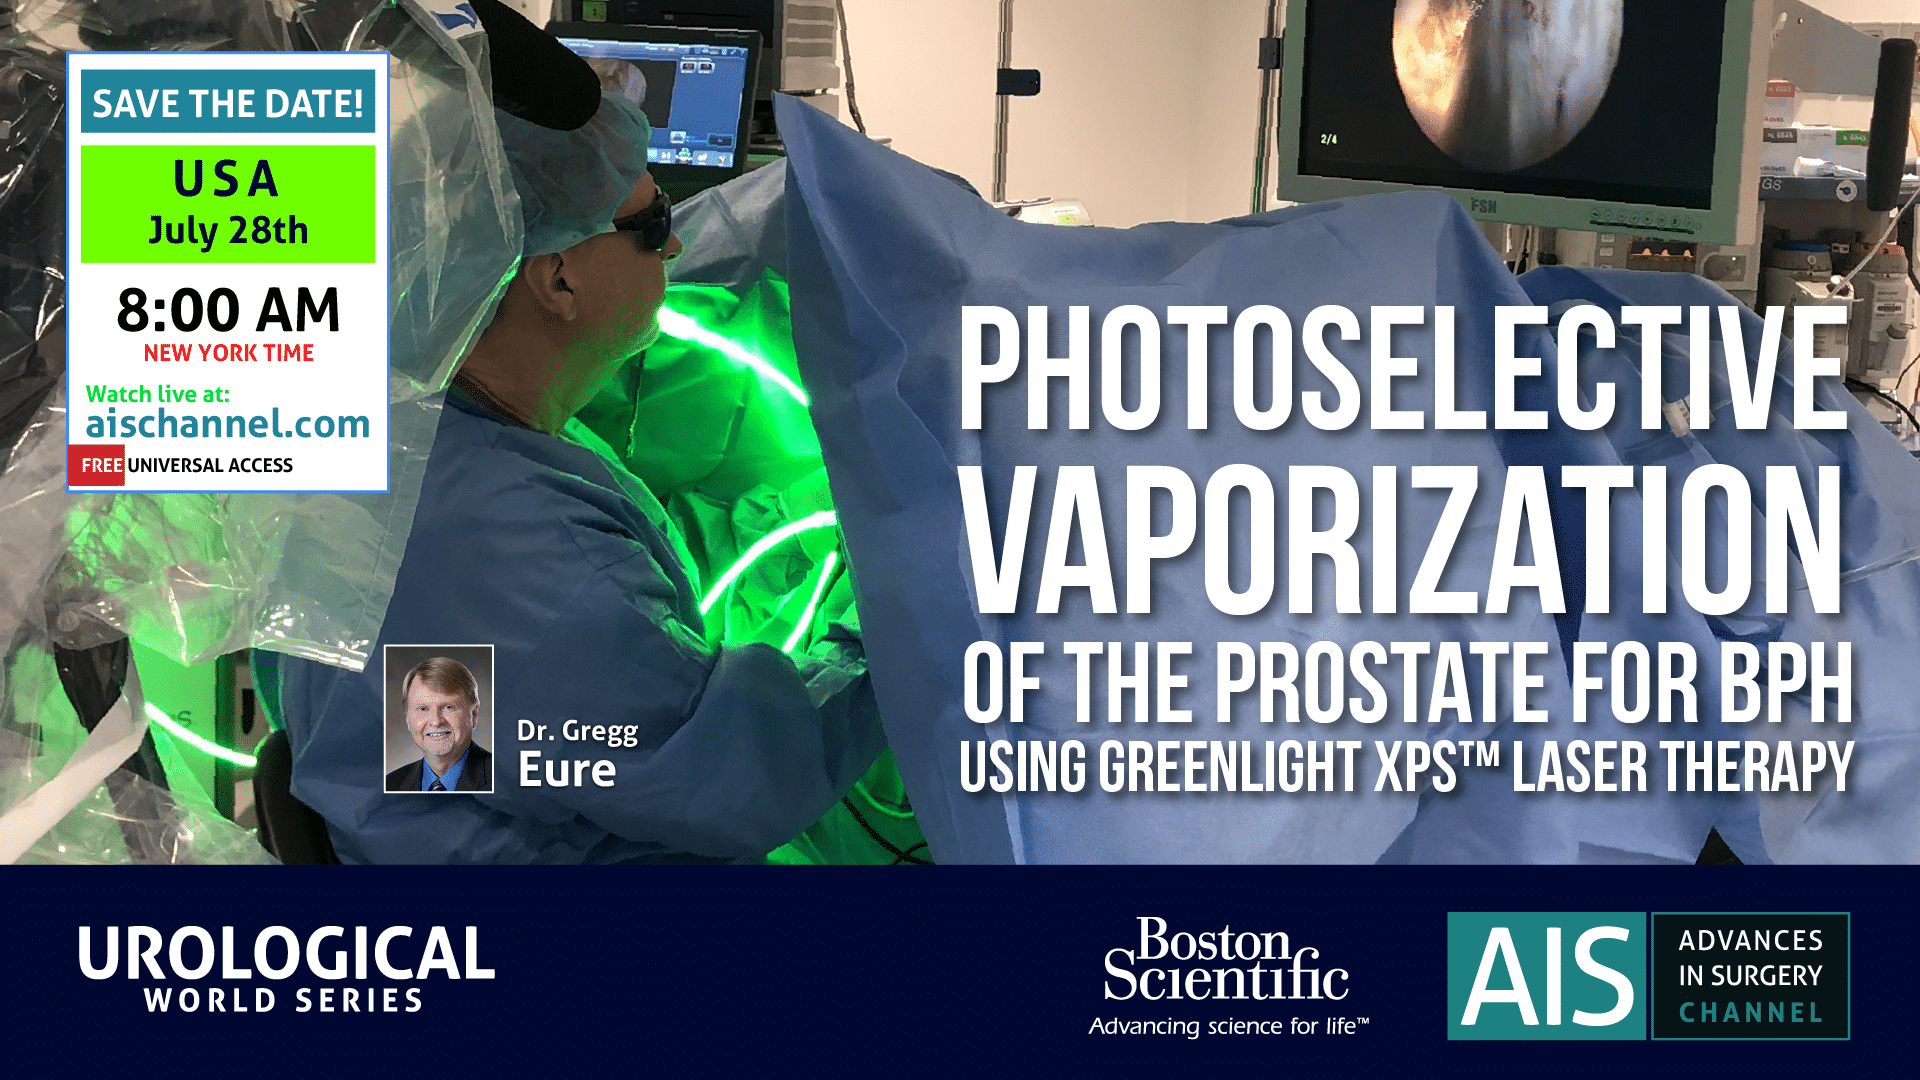 Photoselective Vaporization of the Prostate for BPH procedure by Dr. Gregg Eure